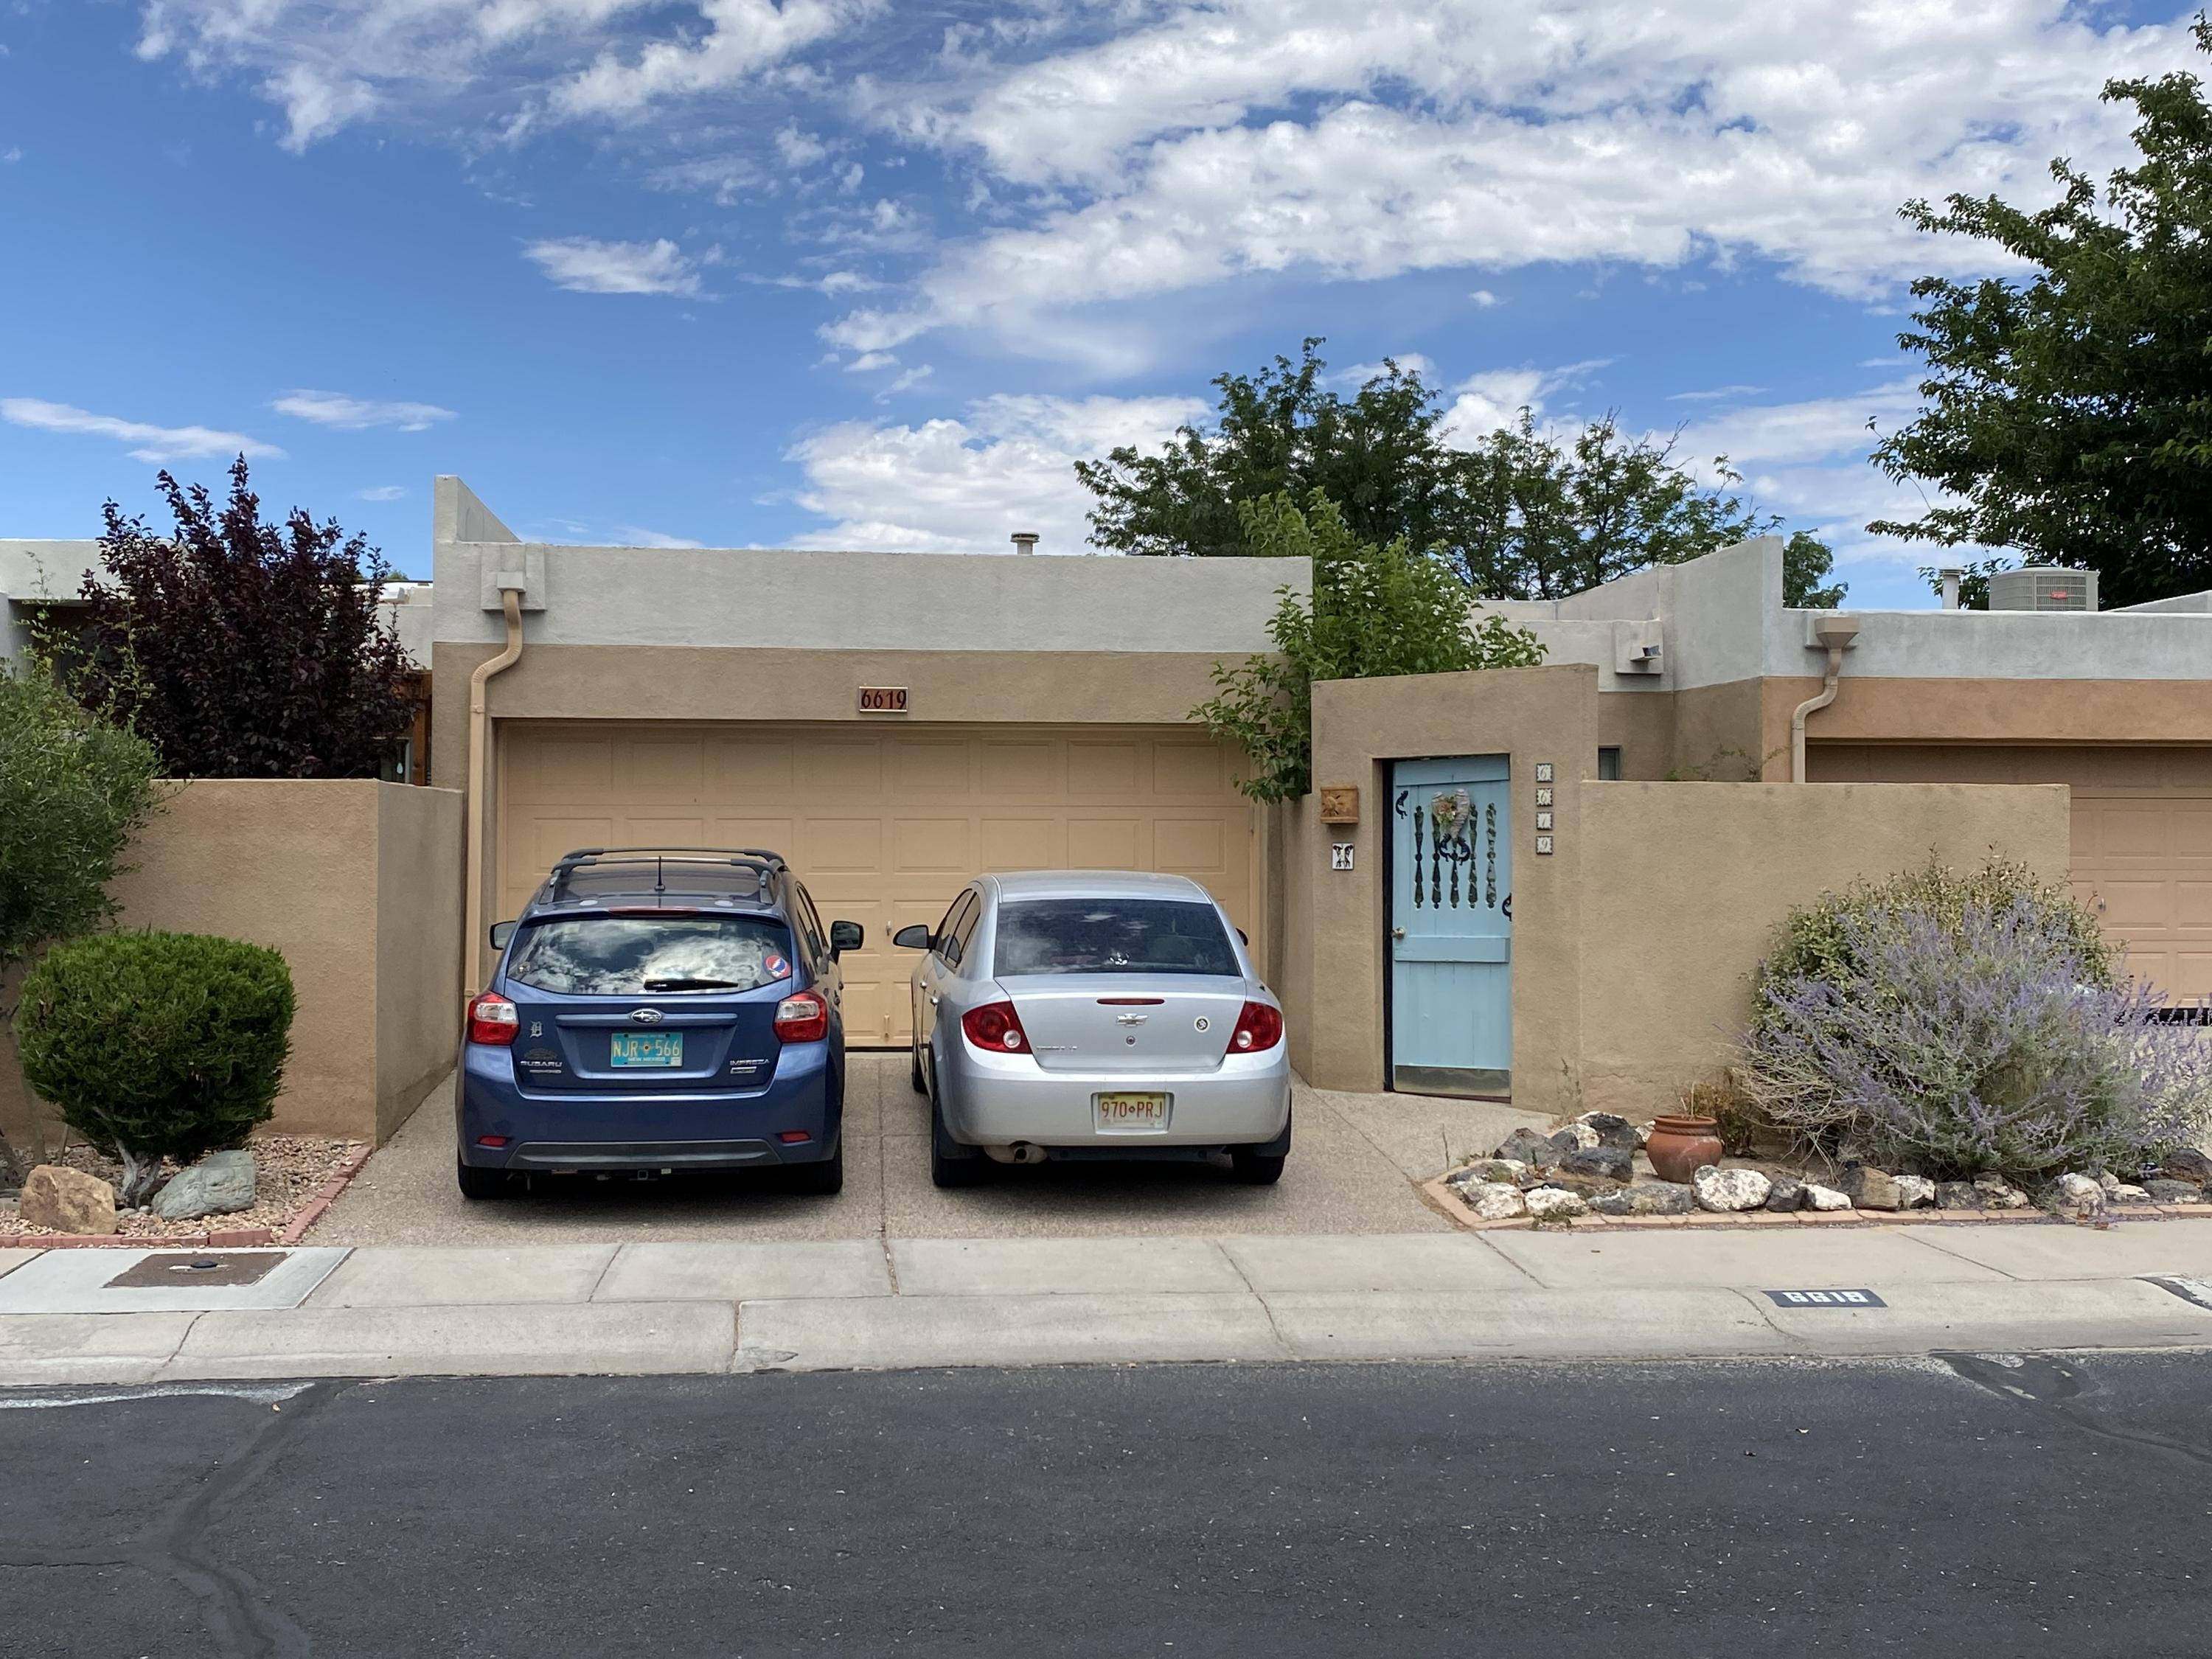 CALLING TO ALL INVESTORS! Currently Leased untill 1/31/21! Please write all offers contingent upon inspections! NO SIGN ON PROPERTY & PLEASE DO NOT DISTRUB TENANT! 3 Bed 1.75 Bath! 4 Sliding Patio doors to 3 Courtyards! Glass Log Fireplace! All appliances stay! Close to Ladera Golf Course and Shopping Centers! Easy access to I-40! PLEASE RESPECT TENANT PRIVACY!